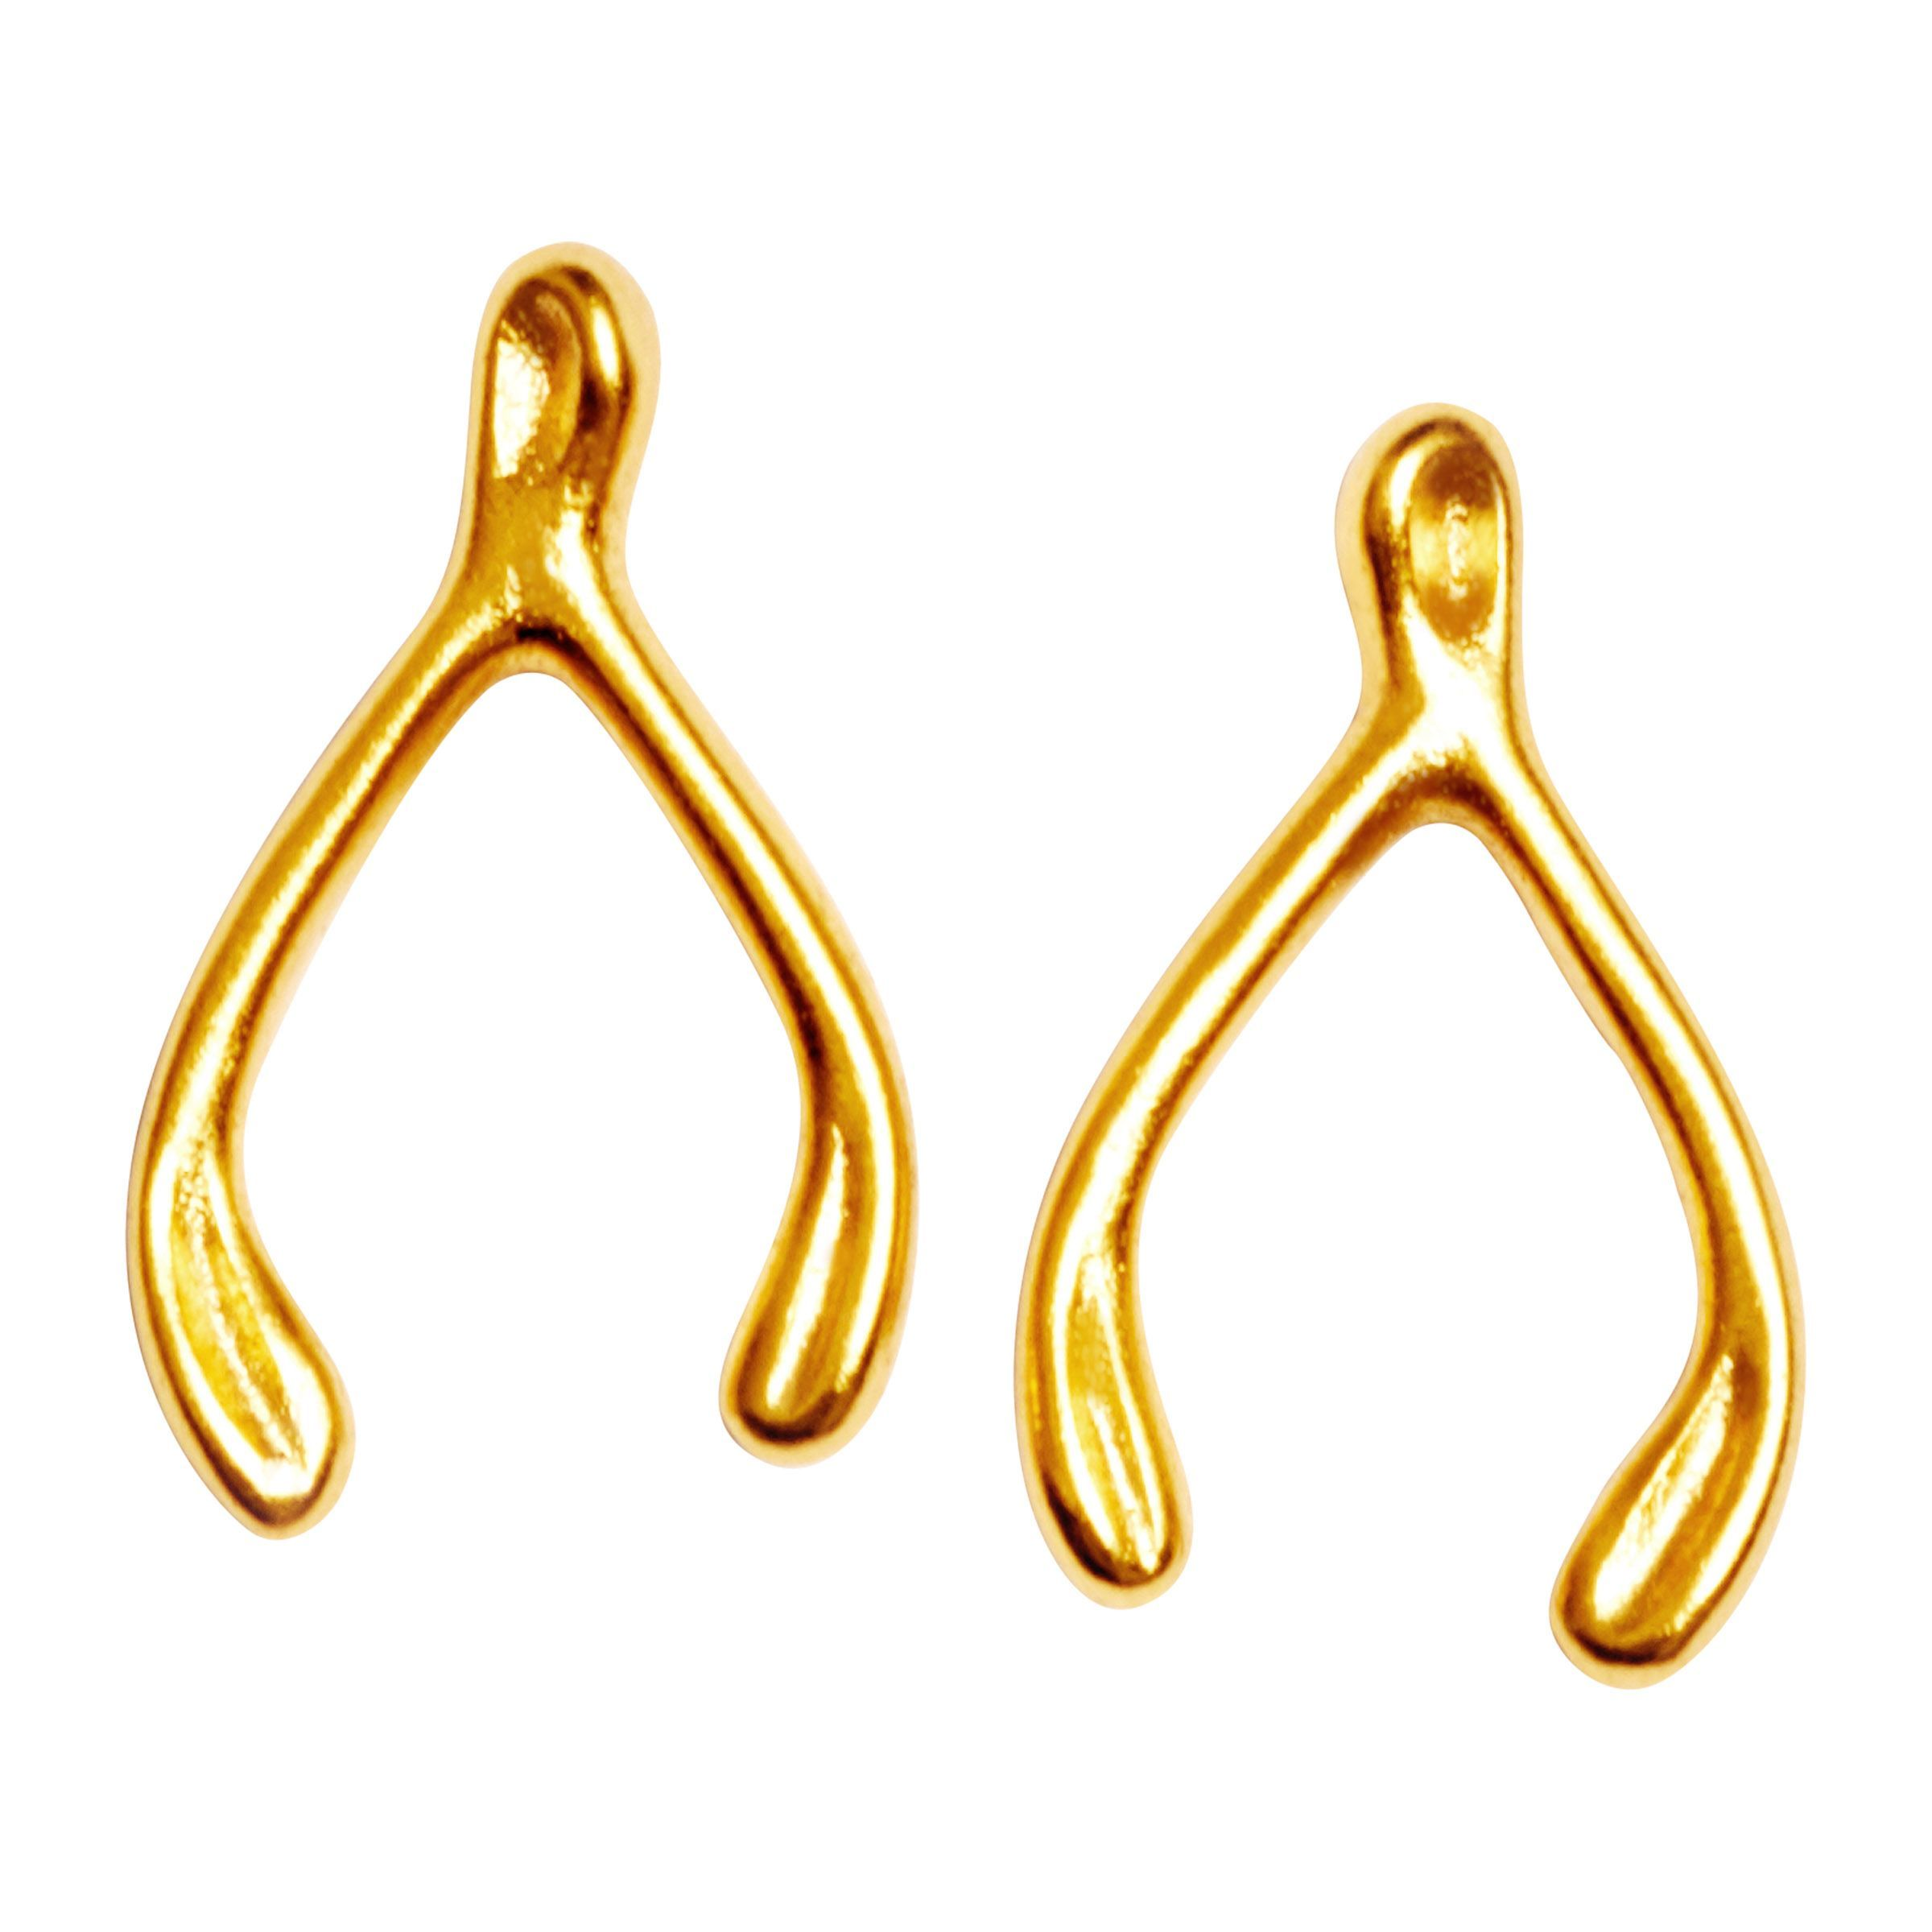 Details About Chrysalis Charmed 14k Gold Flashed Br Wishbone Stud Earrings